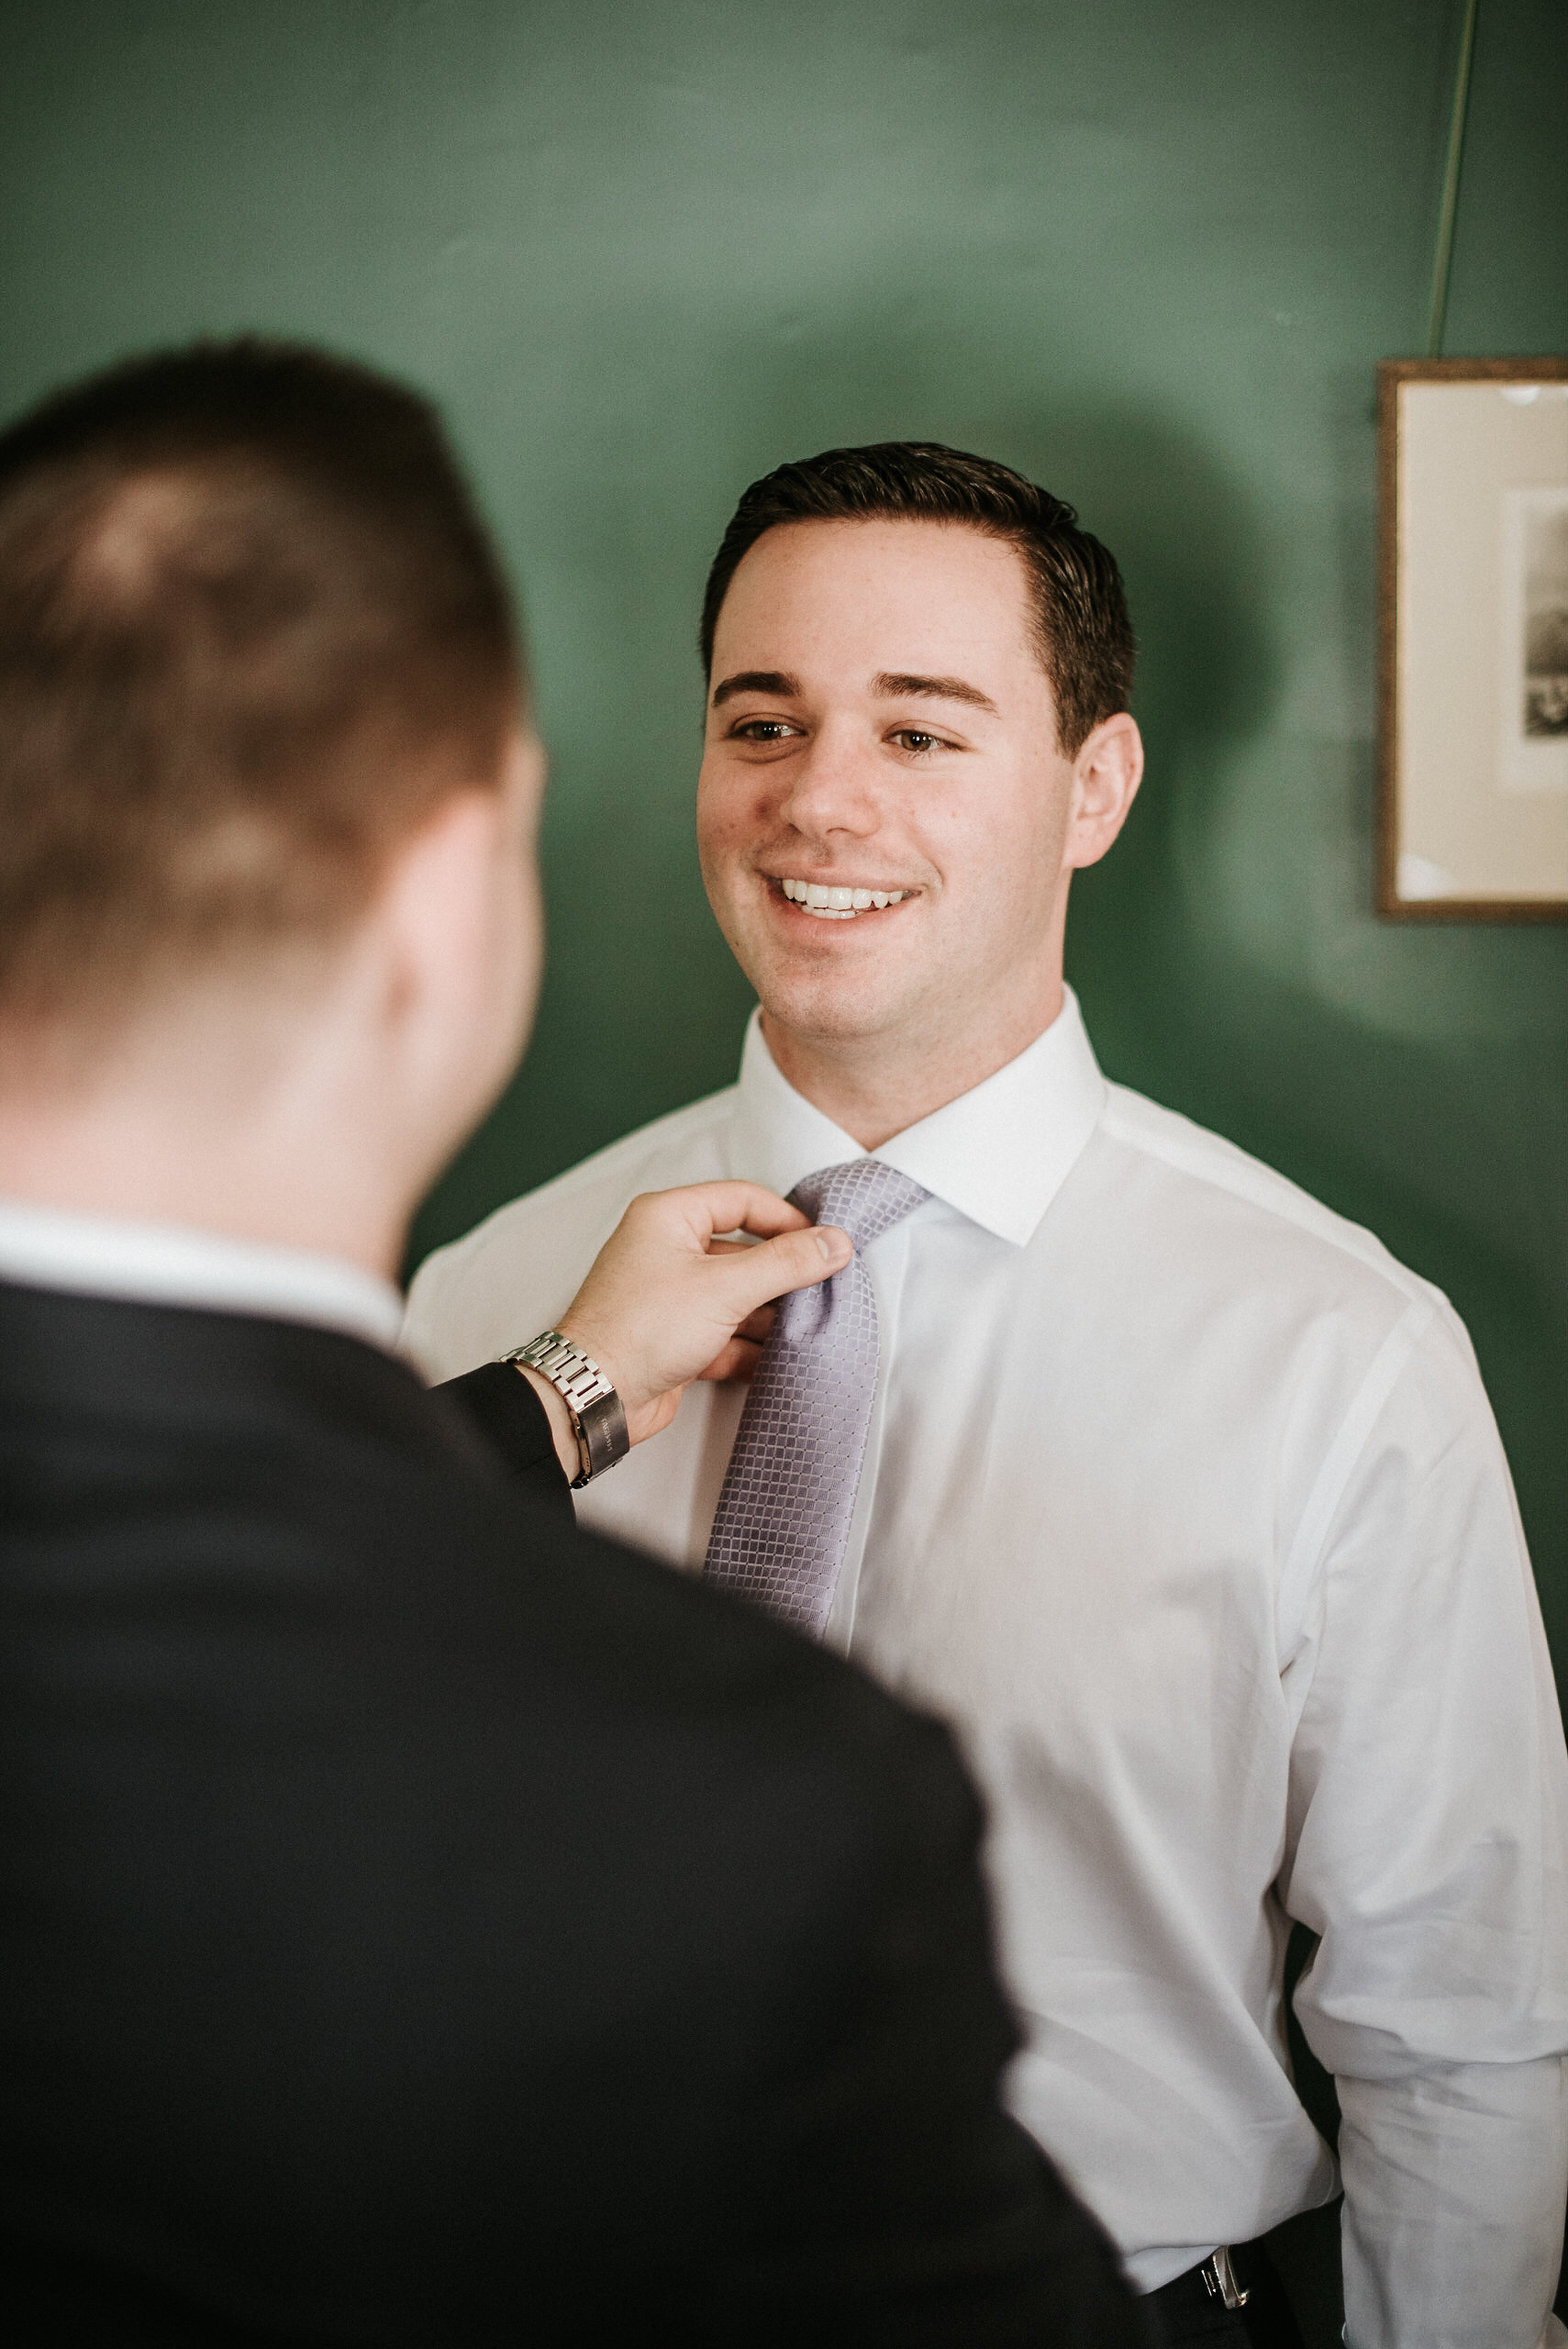 Groomsman helping groom with tie